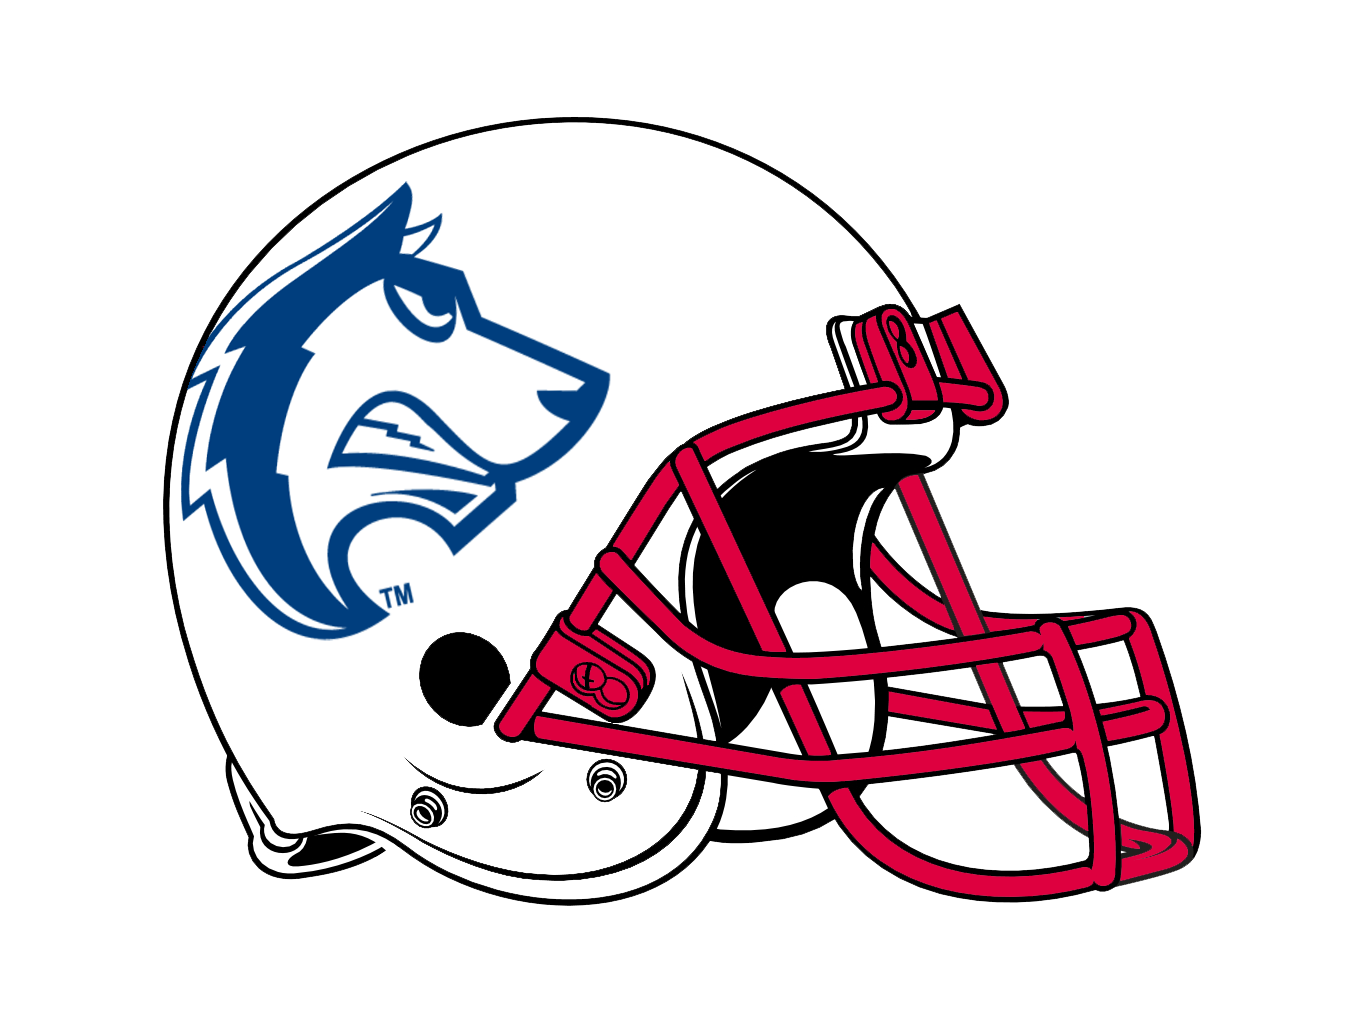 College football helmet clipart jpg transparent download Cool Football Drawings Group (74+) jpg transparent download